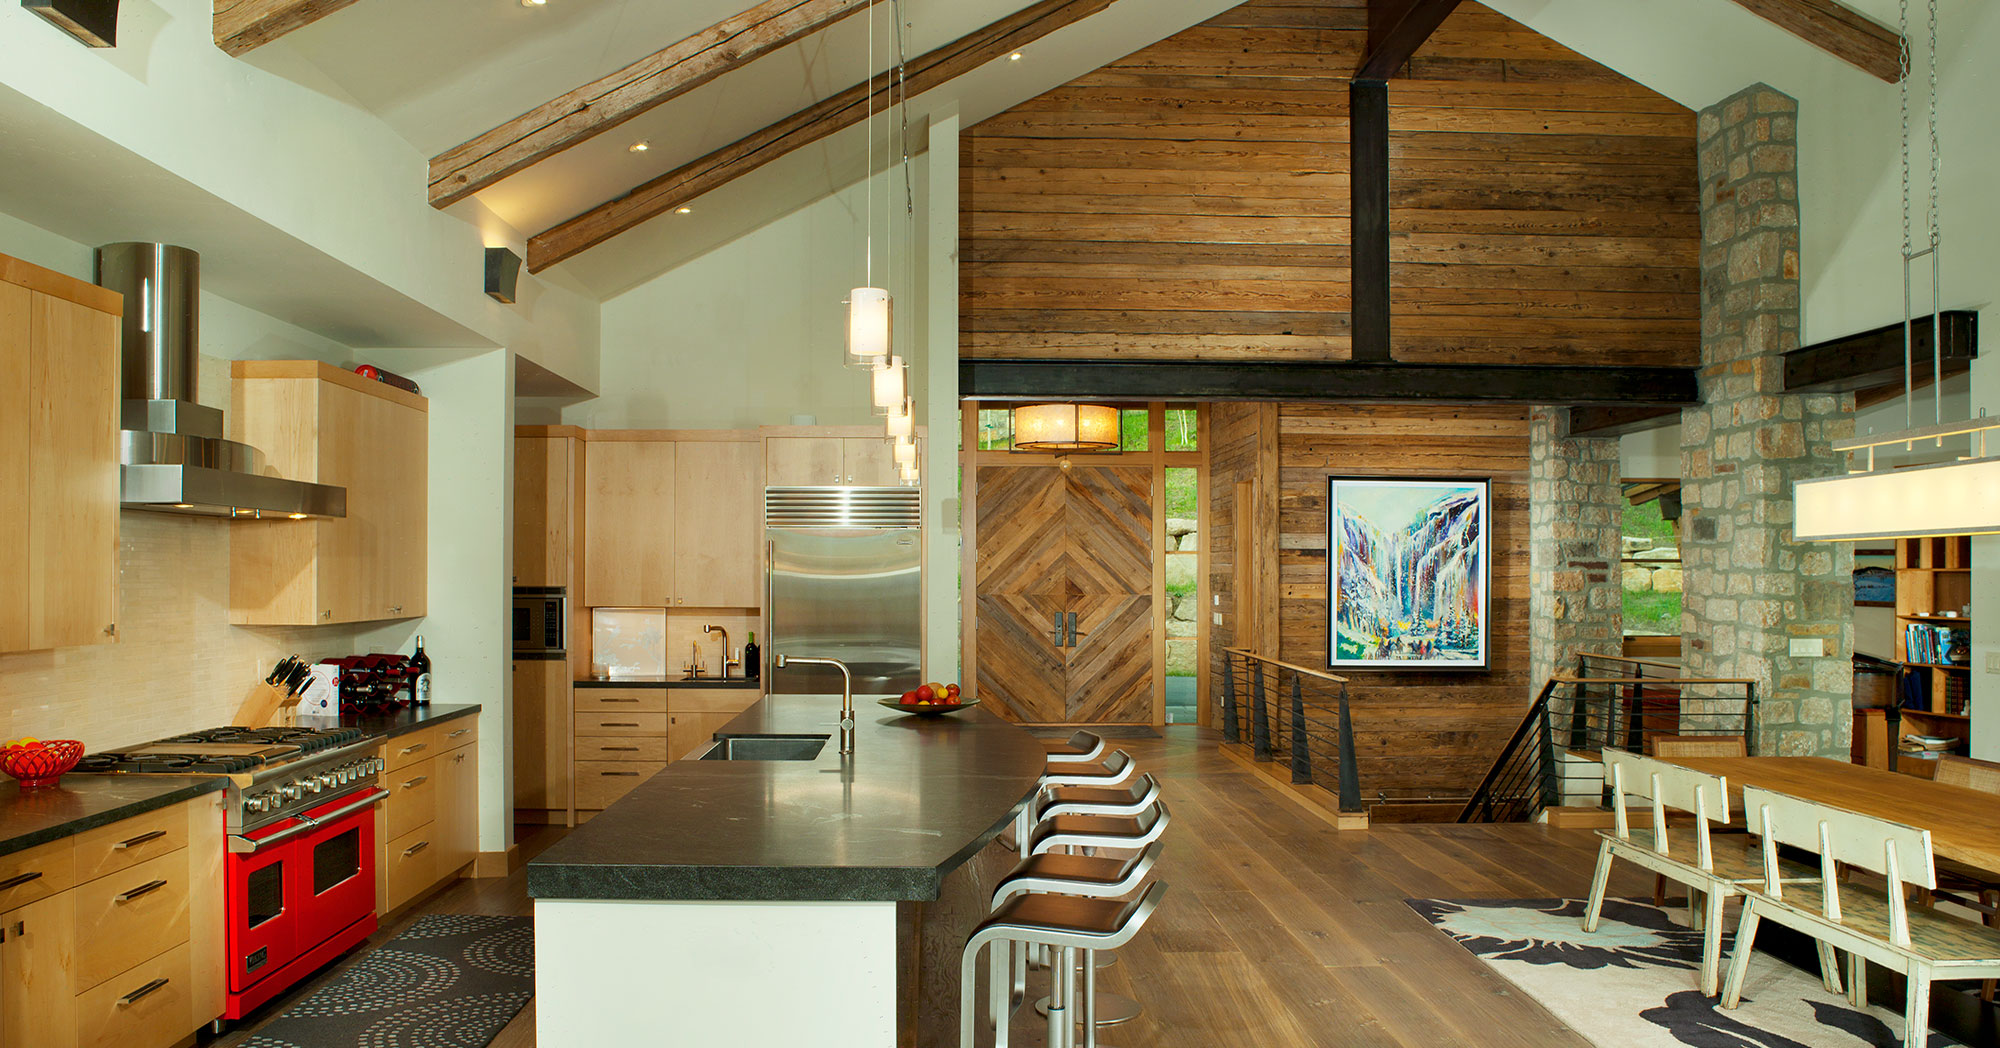 Edwards Custom Woodwork in Vail Valley